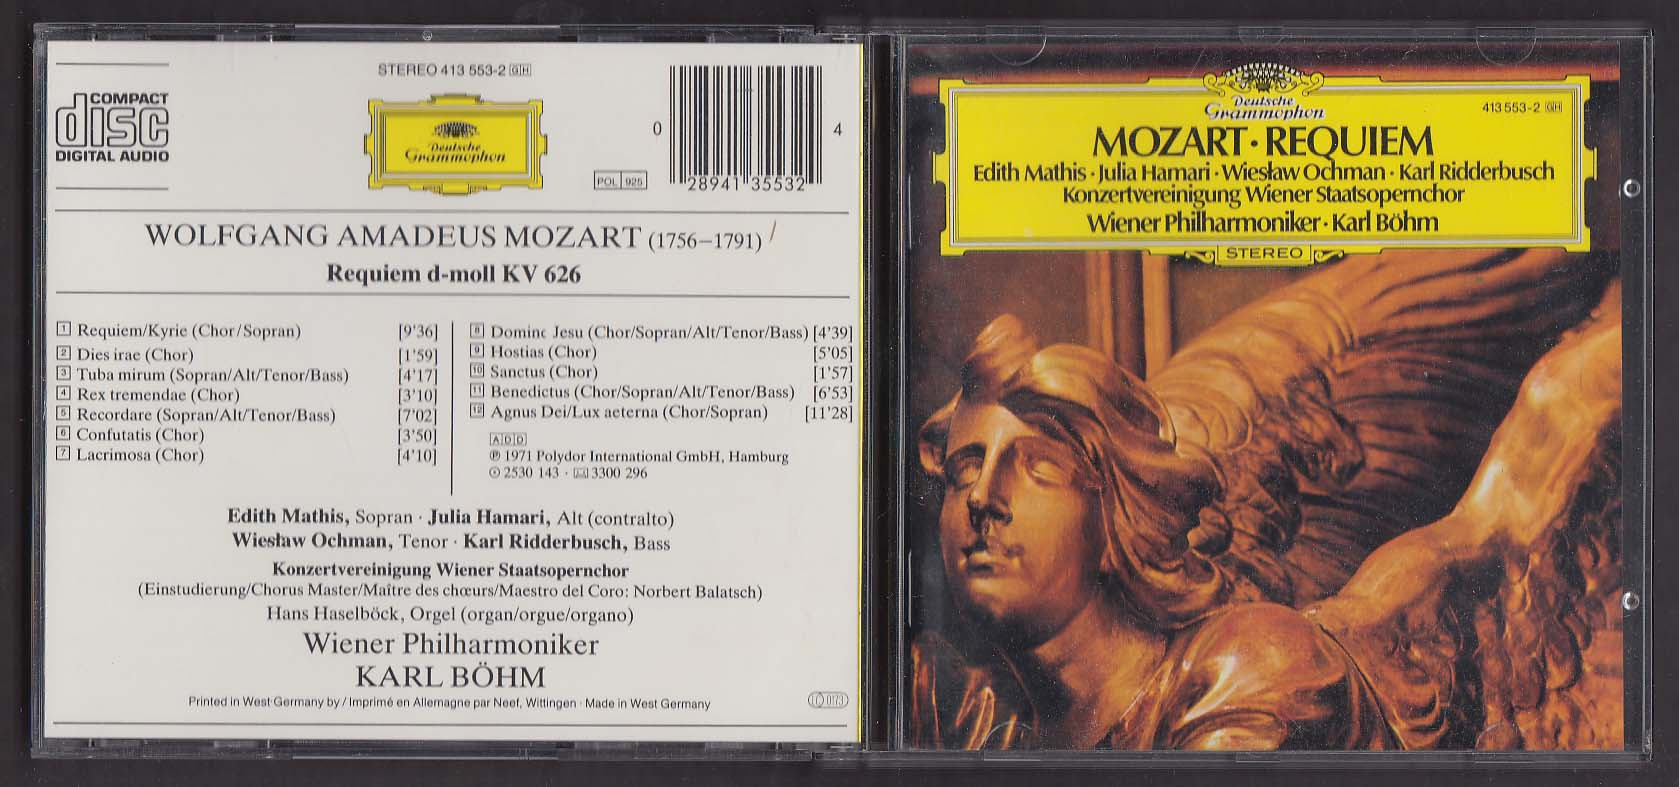 Image for Mozart Requiem Wiener Philharmoniker Bohm Deutsche Grammophon CD 1983